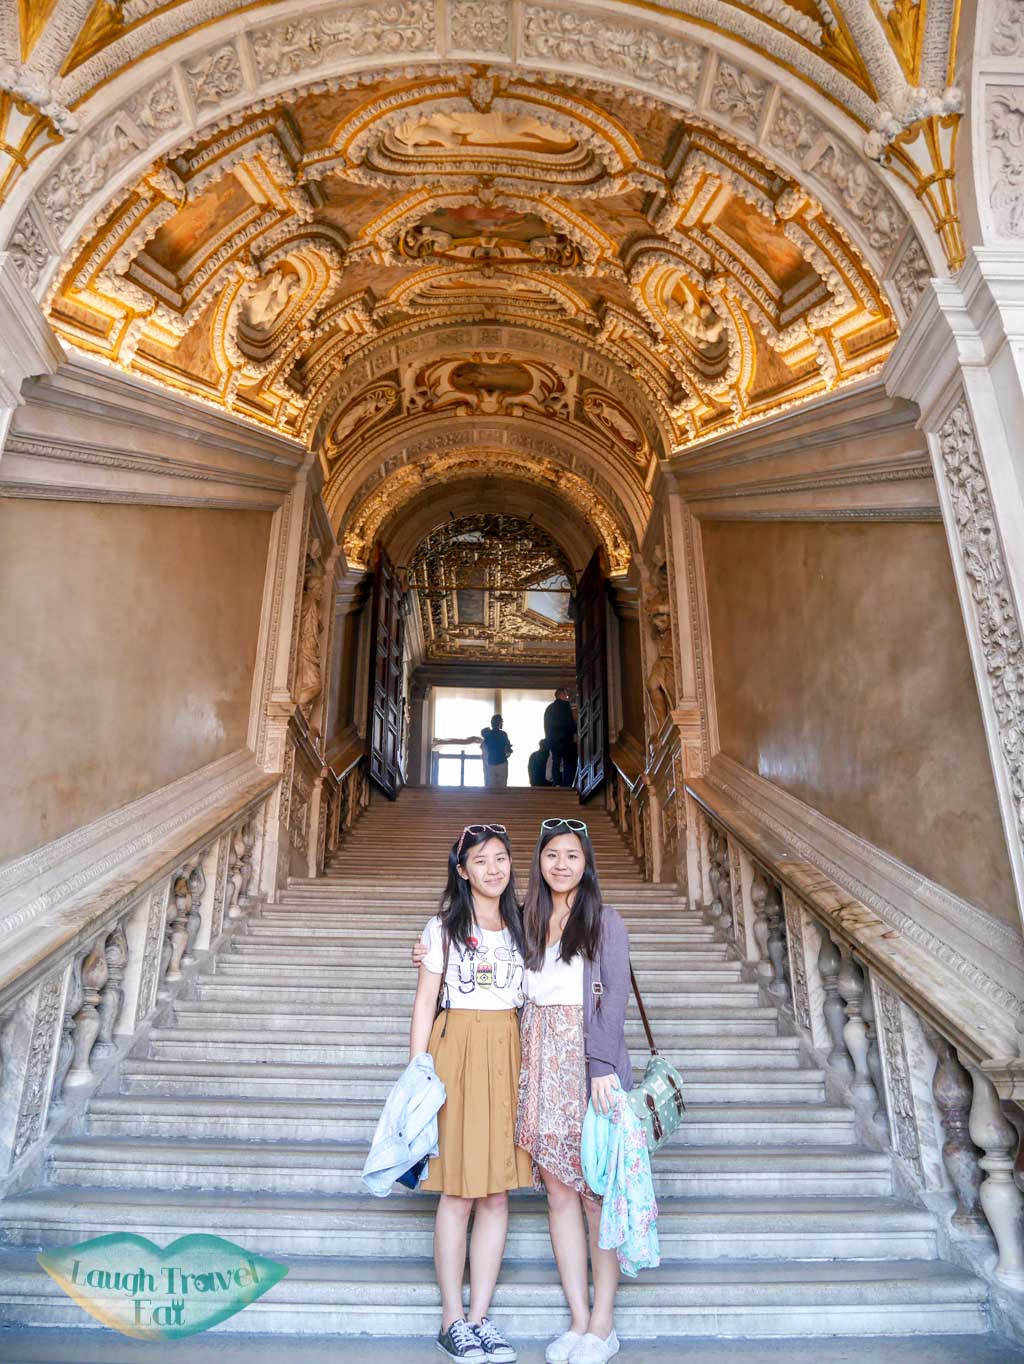 me and wing in dodge palace venice italy - laugh travel eat